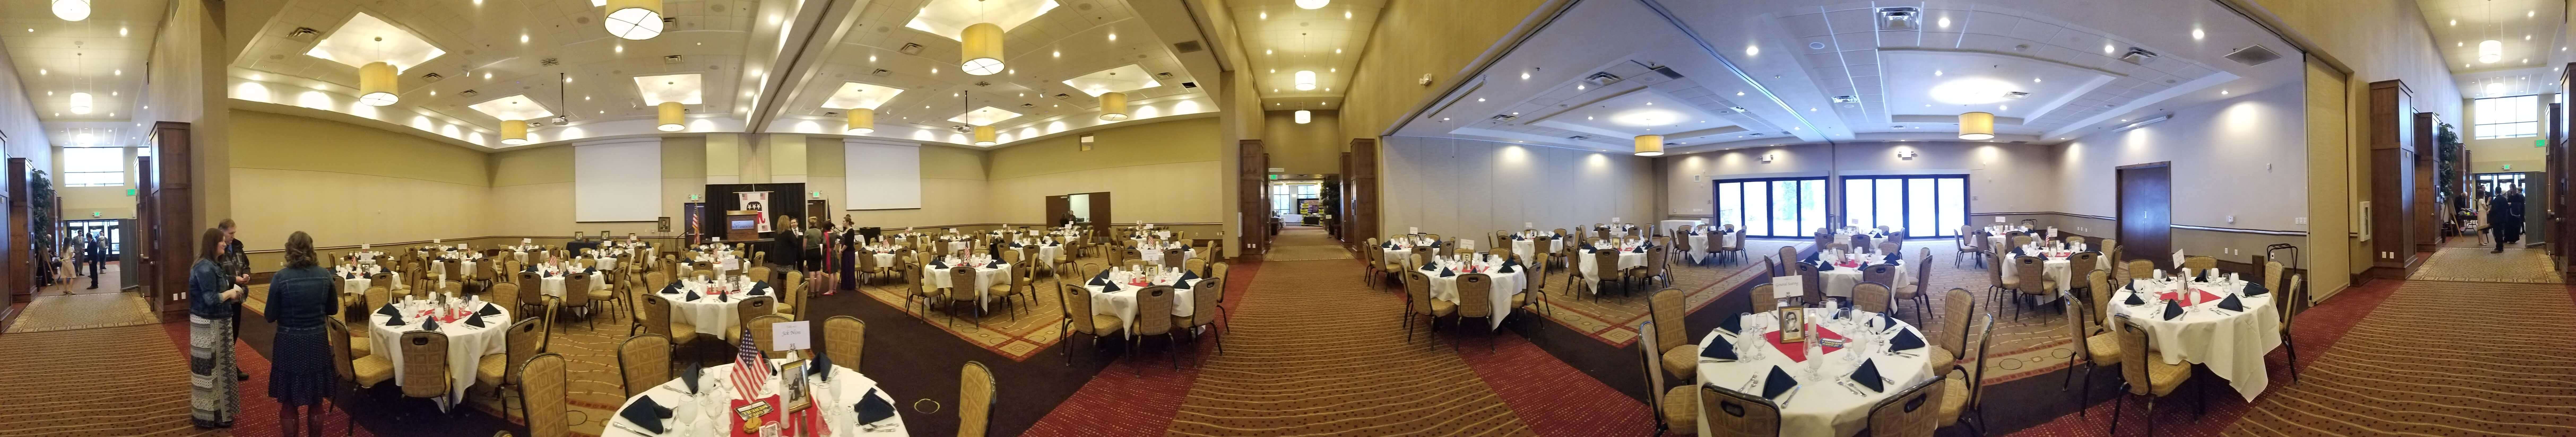 2018 CCRP Lincoln Day Dinner. (c) Joe Levi, Used with permission.